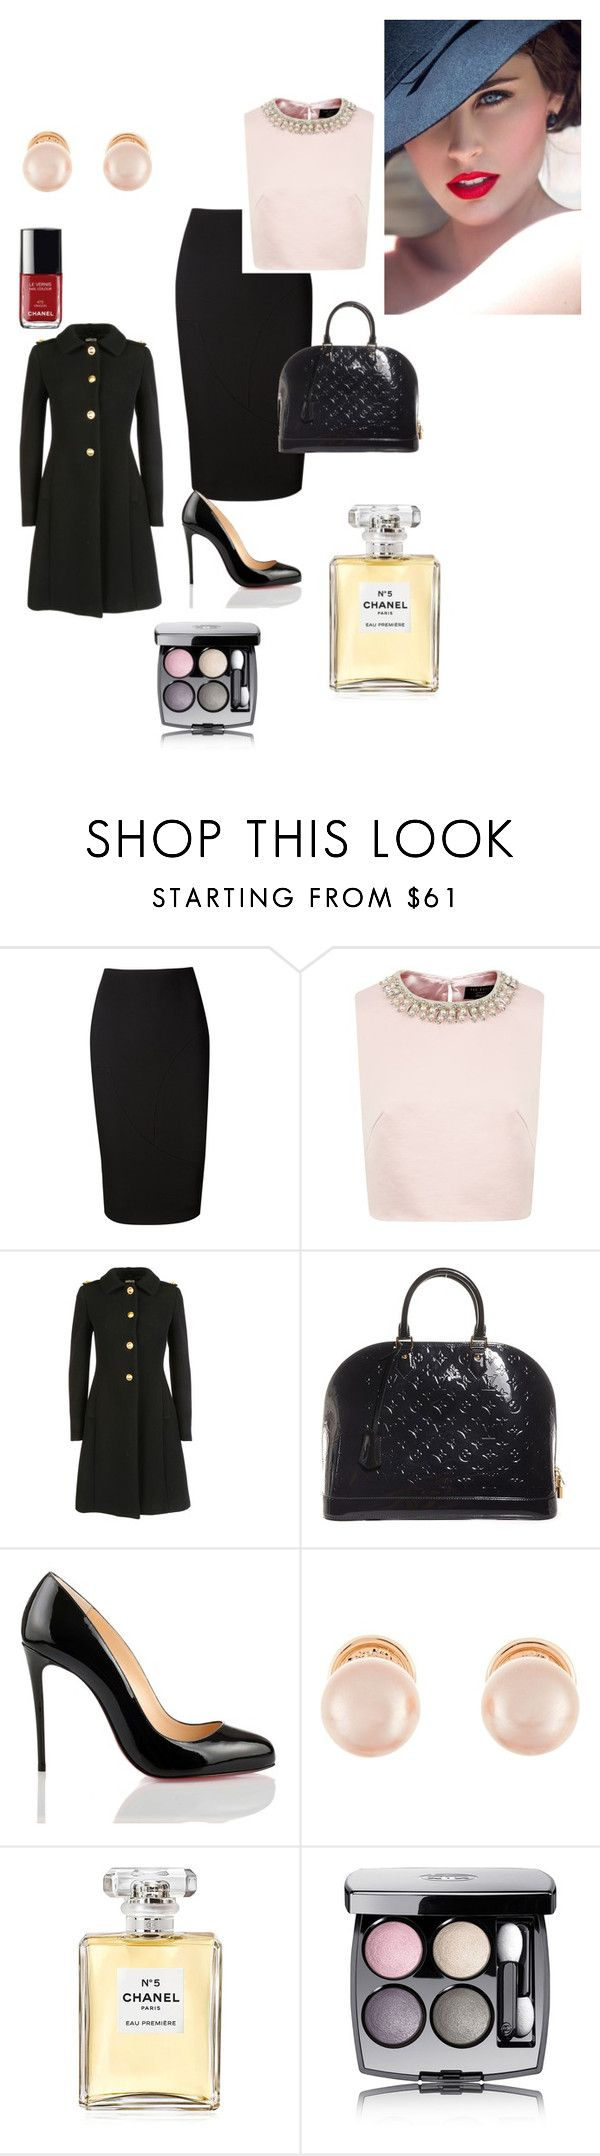 """Klassischer Stil"" by taniaazzini on Polyvore featuring moda, Victoria Beckham, Ted Baker, Miu Miu, Louis Vuitton, Christian Louboutin, Kenneth Jay Lane e Chanel"